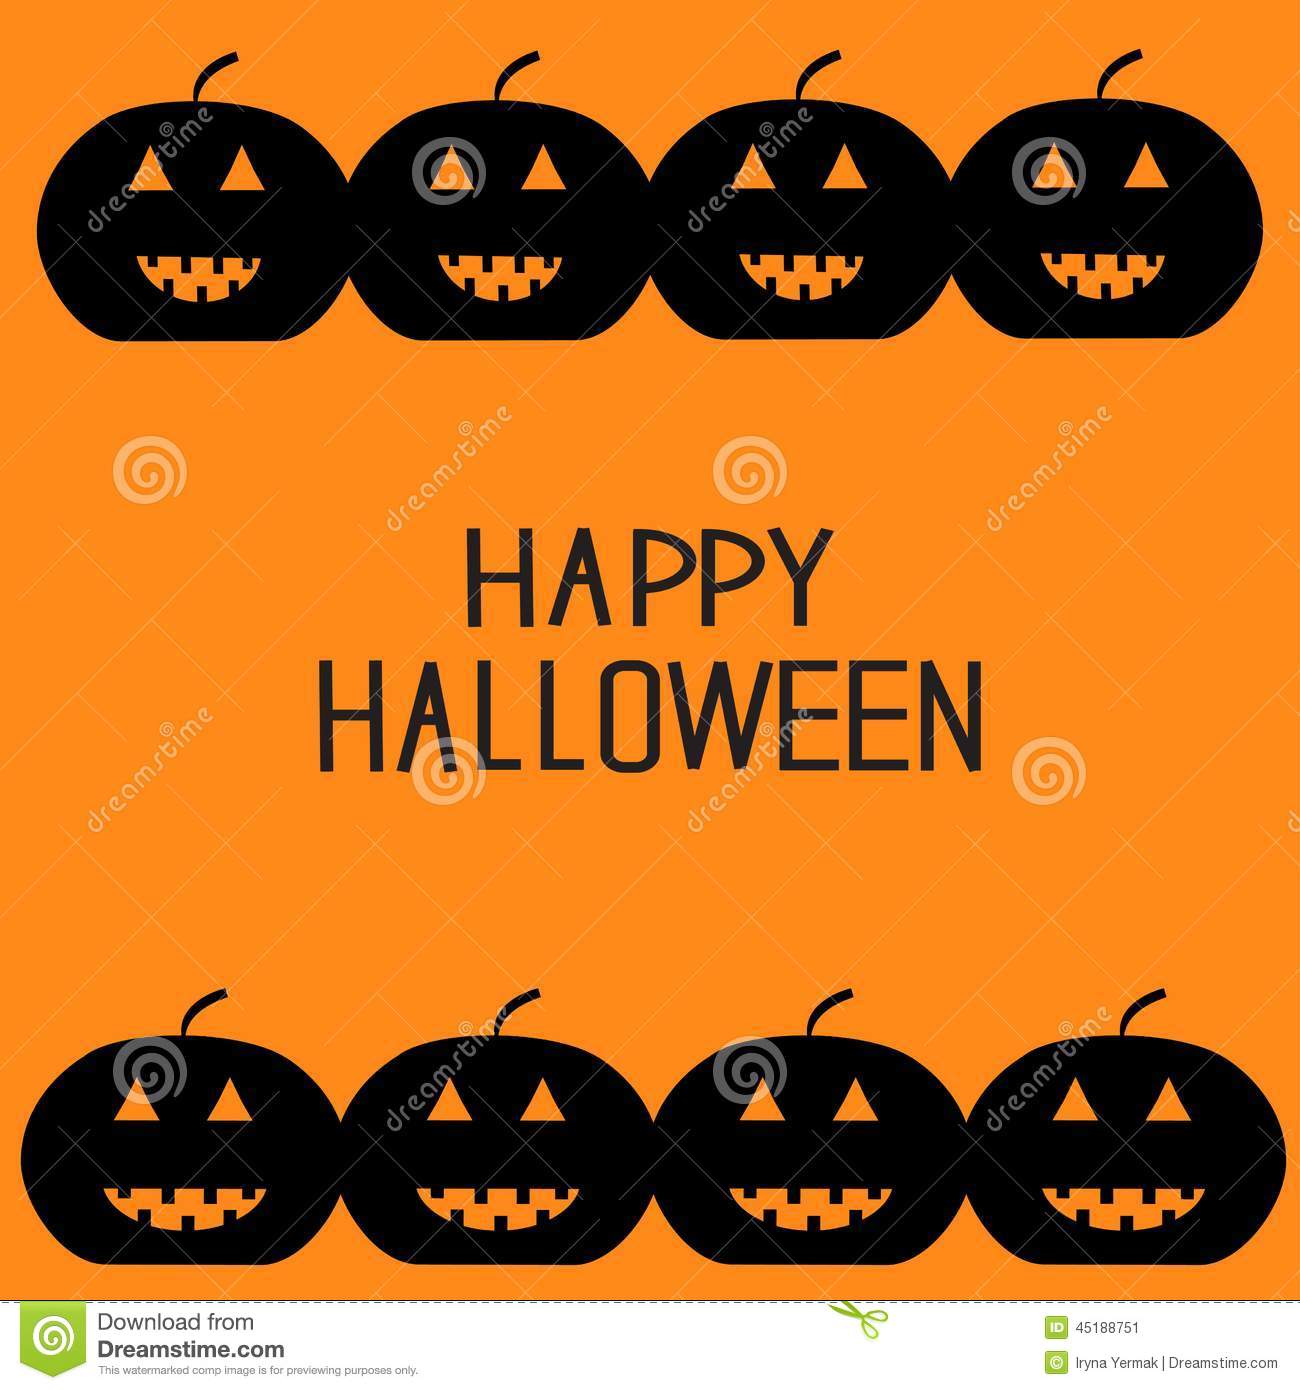 Halloween greetings for kids image collections greeting card examples black pumpkin frame halloween card for kids flat design stock halloween card for kids flat design kristyandbryce Gallery